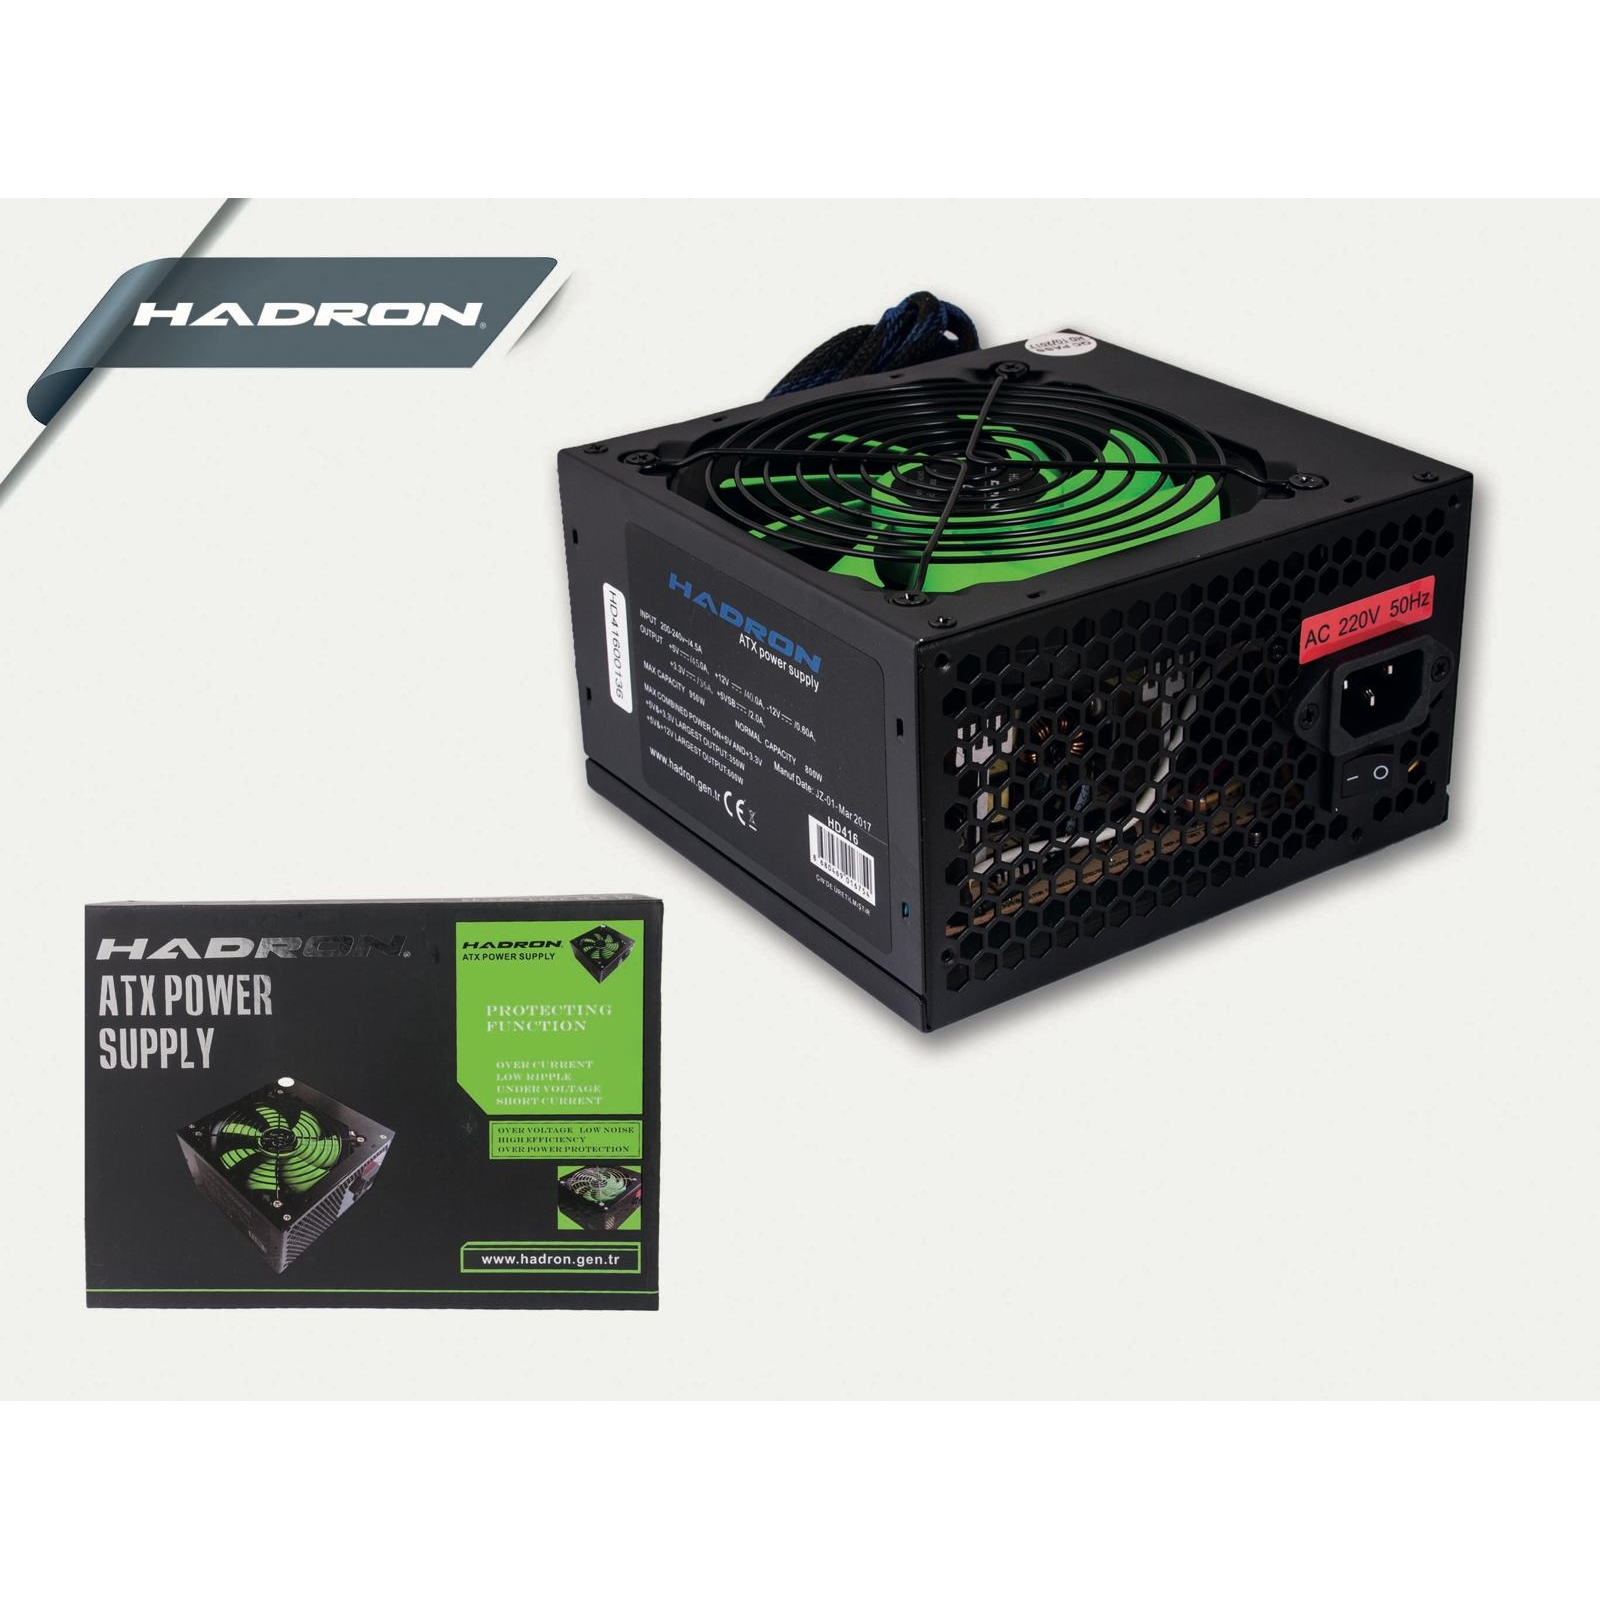 HADRON HD413/10 600W 12cm FANLI POWER SUPPLY KUTULU